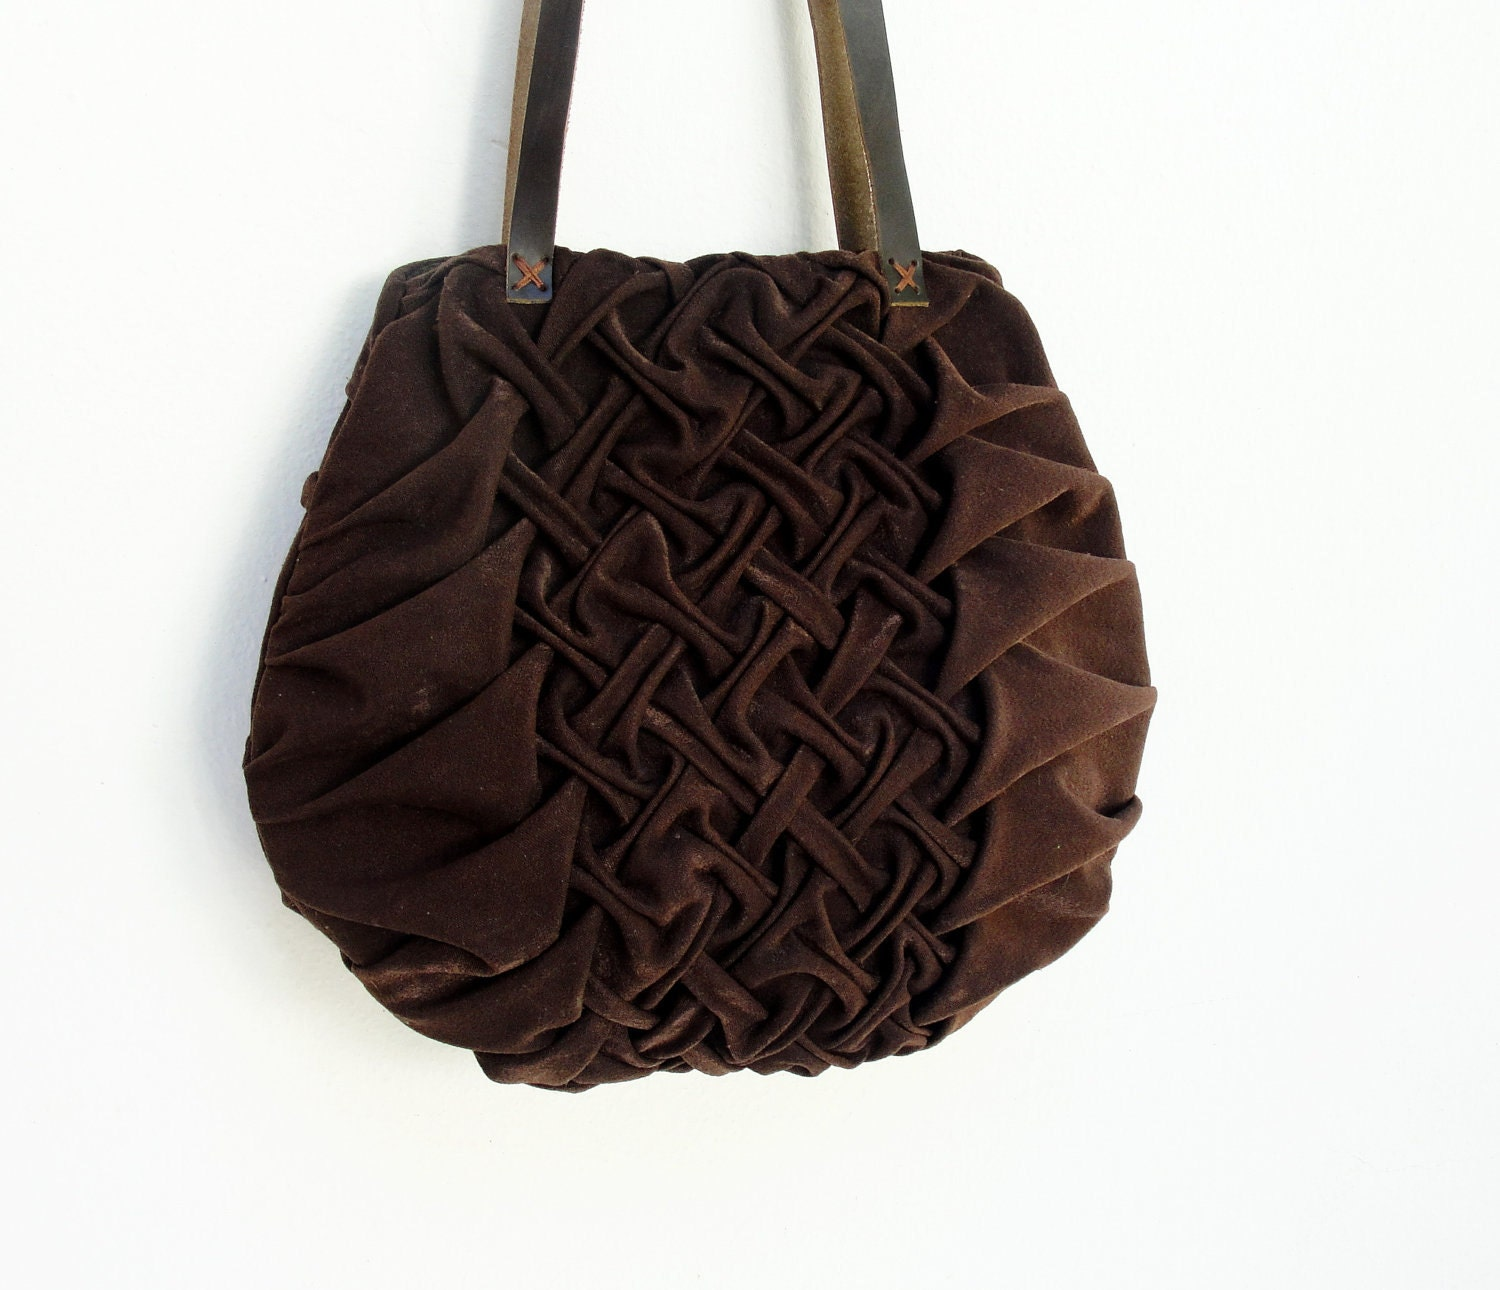 Smocked and Pleated Chocolate Bag - StarBags